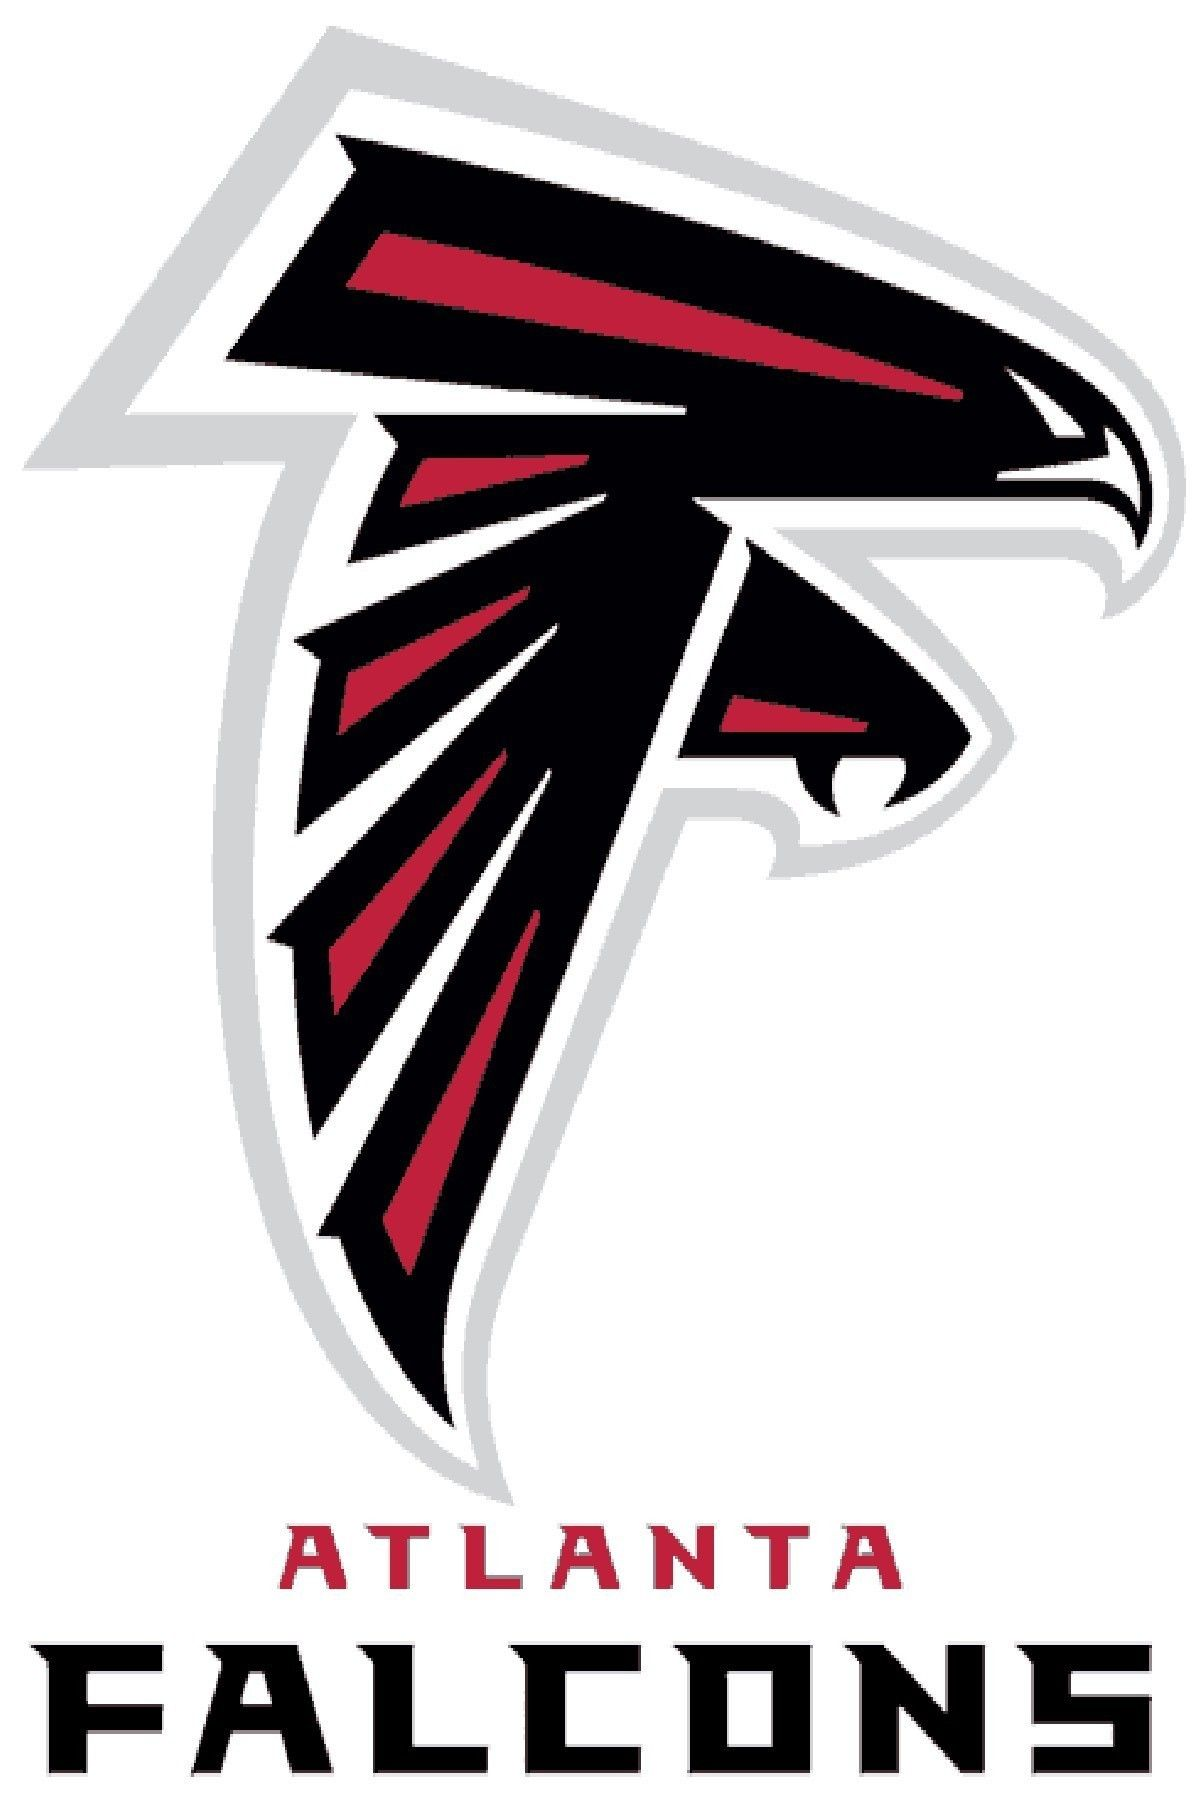 Atlanta Falcons Photo Logo Atlanta Falcons Atlanta Falcons Logo Atlanta Falcons Football